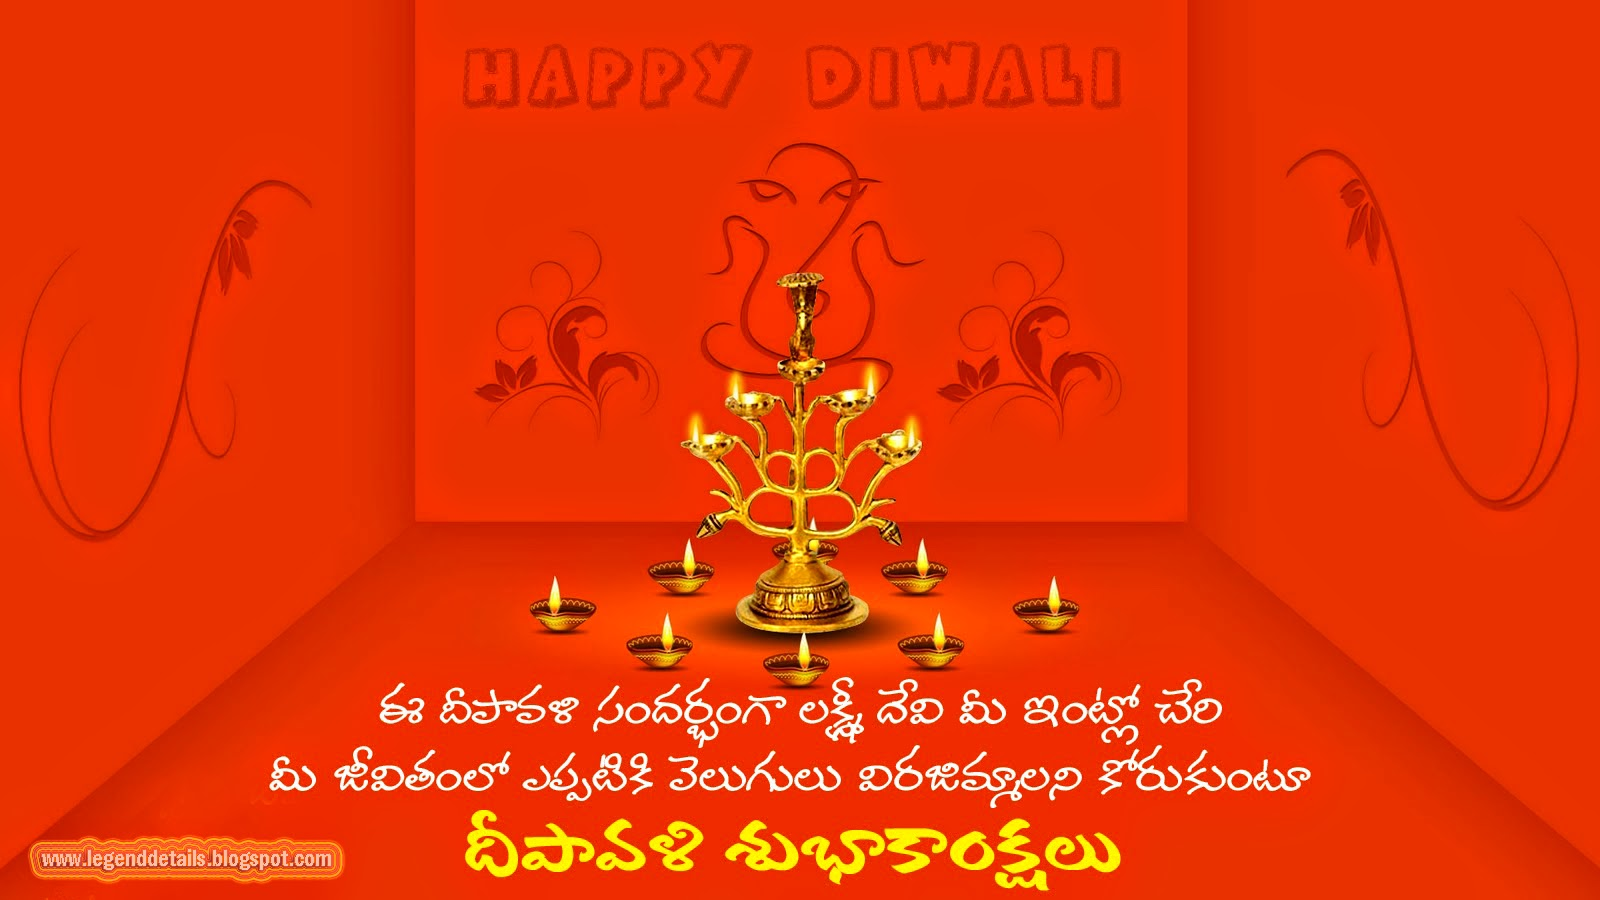 Diwali Greetings In Telugu Deepavali Greetings In Telugu